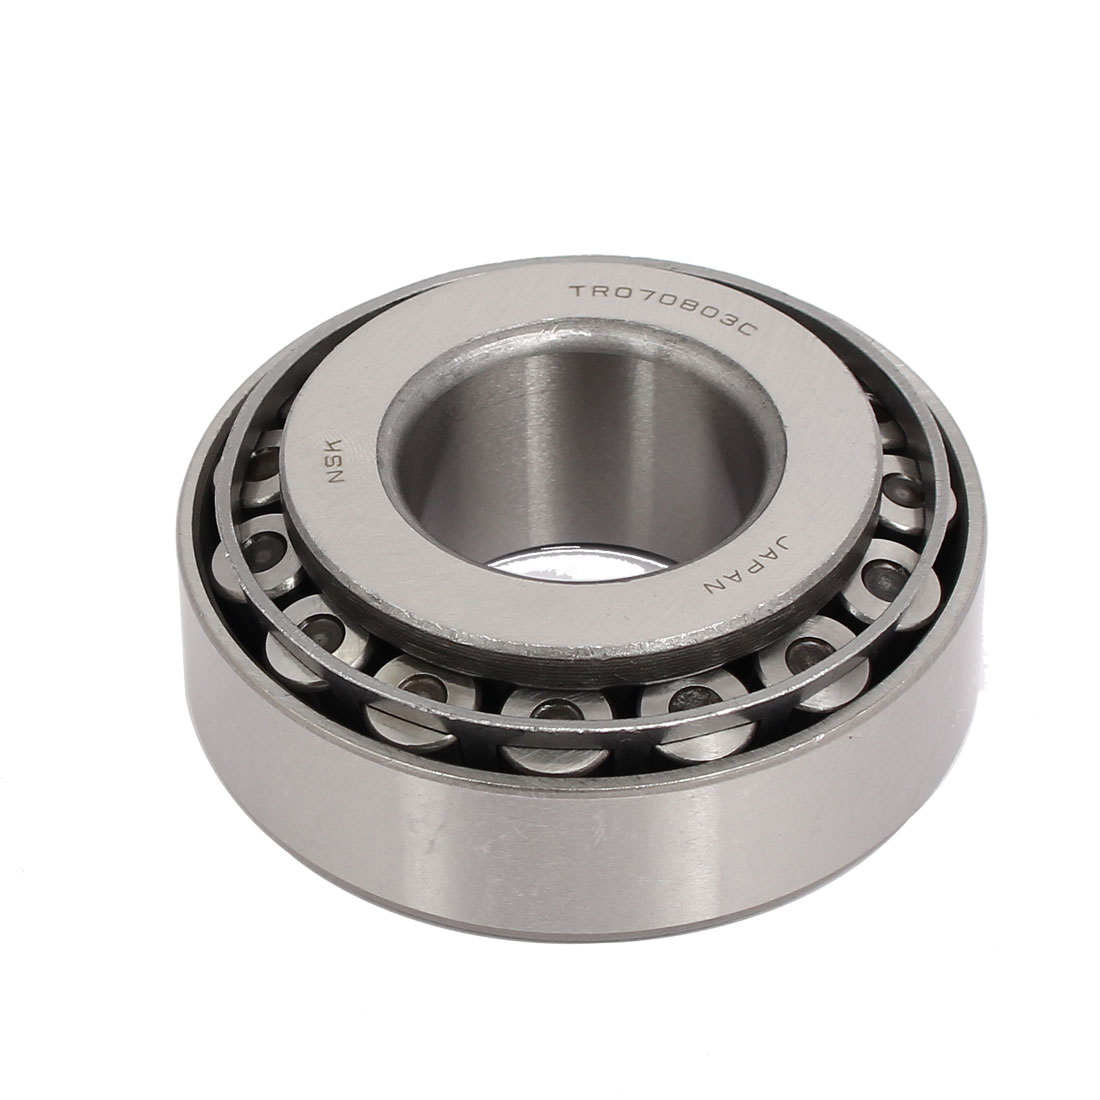 070803C 80mmx34mmx30mm Single Row Tapered Roller Bearing Silver Tone